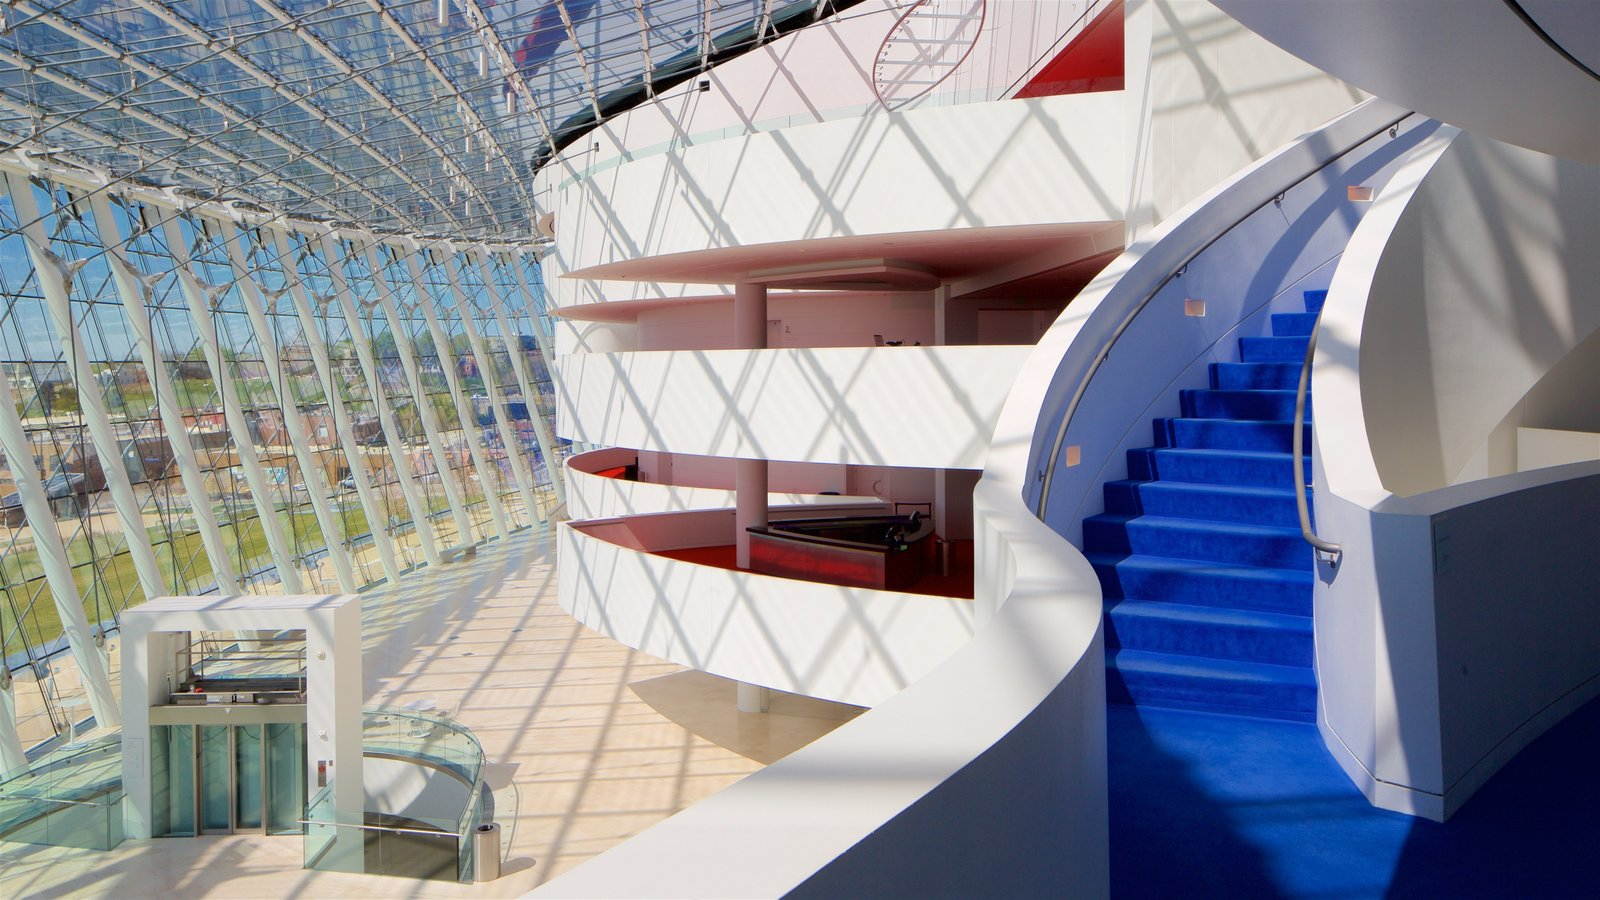 Kauffman Center for the Performing Arts que incluye vistas interiores y arquitectura moderna